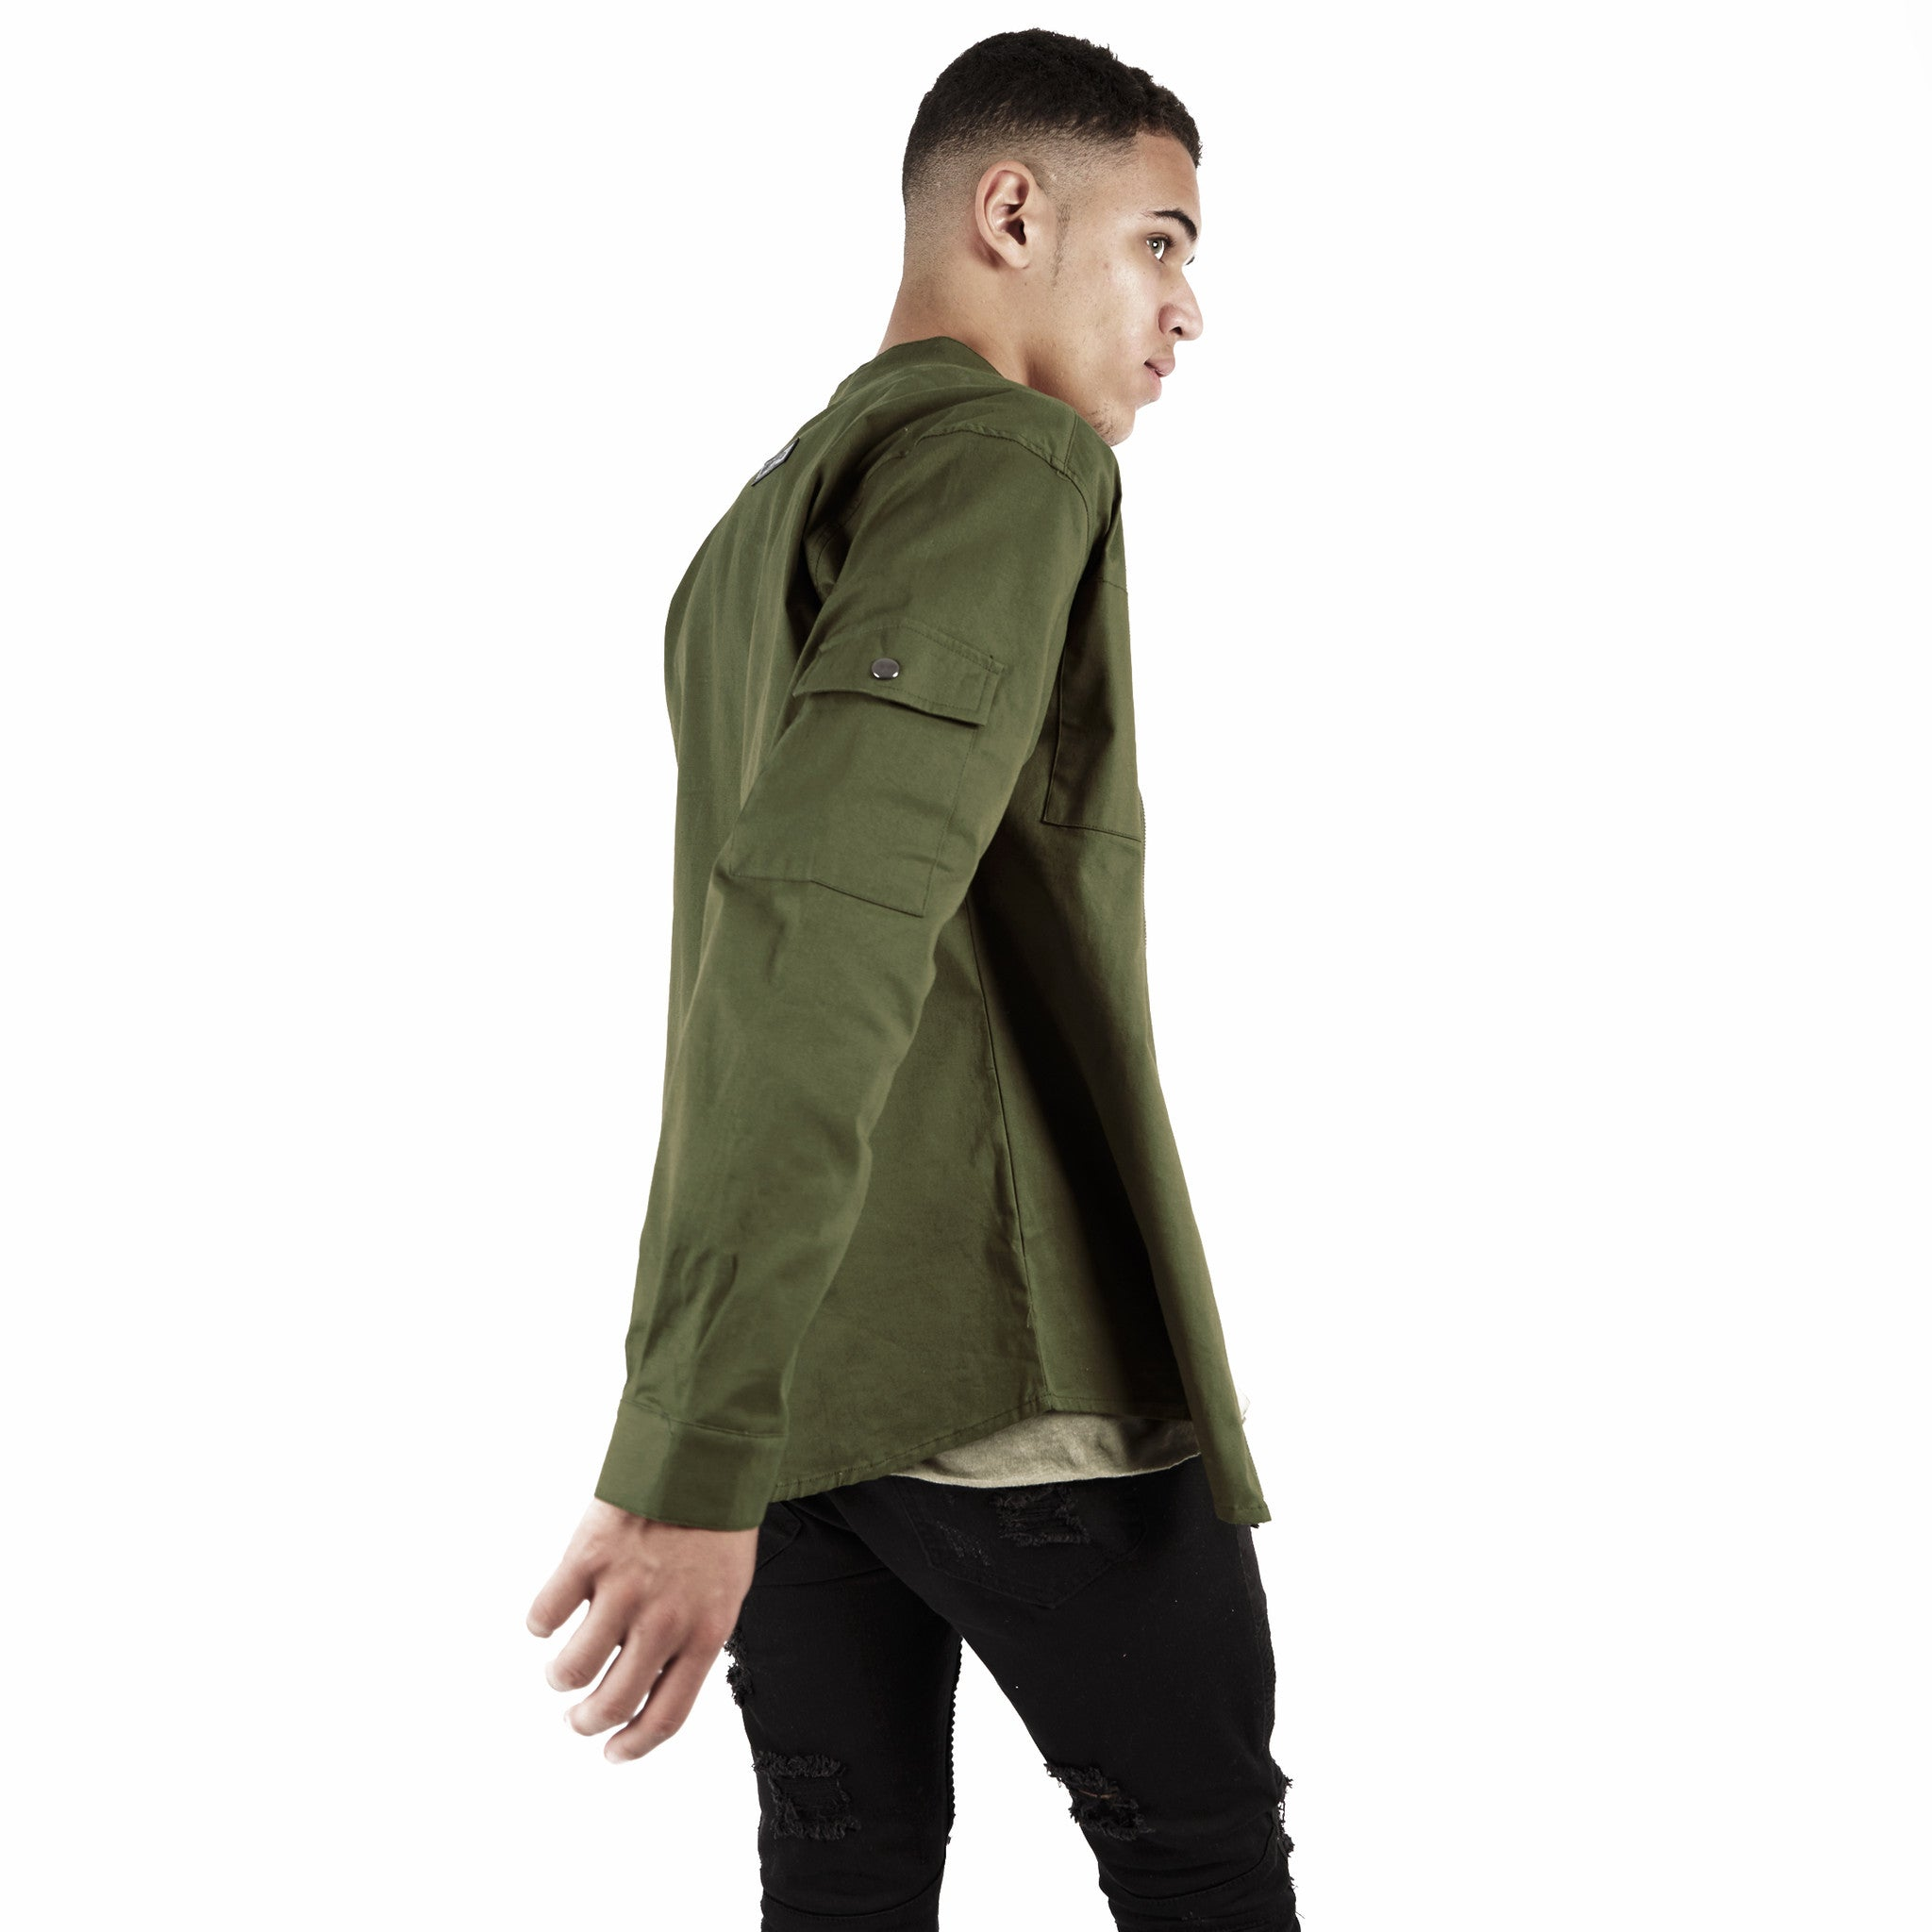 SH342 Utility Zip Shirt - Military Green - underated london - underatedco - 6